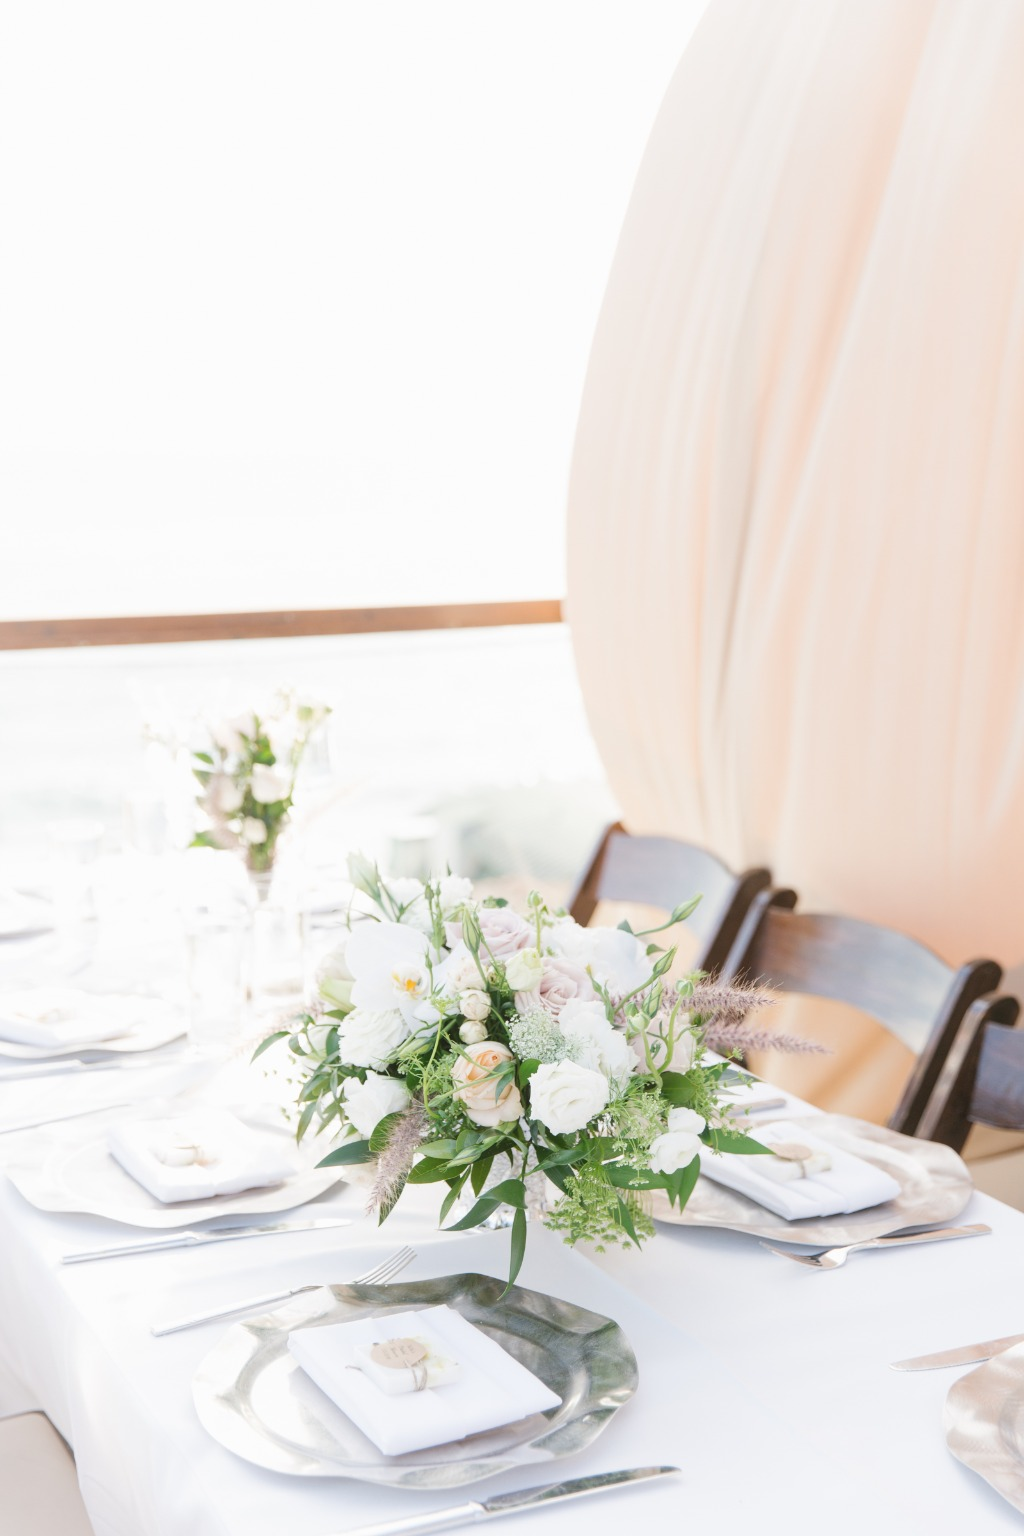 Lovely flowers and ocean breezes made for a GORGEOUS laguna beach bridal shower! See more from this day on the blog